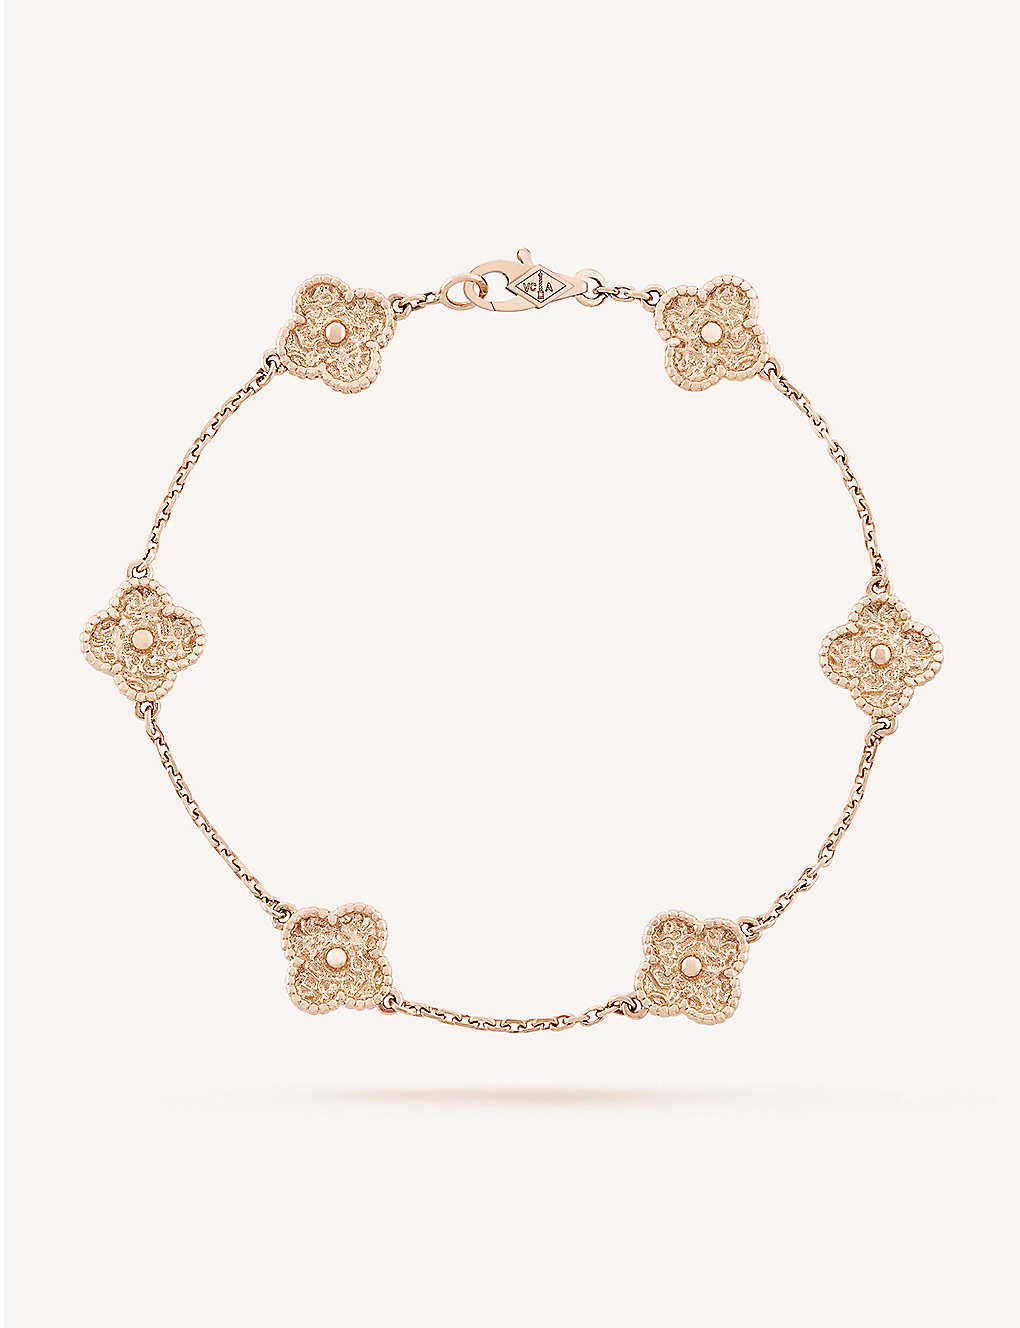 arpels m alhambra van no pinkgold cleef gb recent pdp searches en zoom sweet gold vca cat bracelet selfridges com